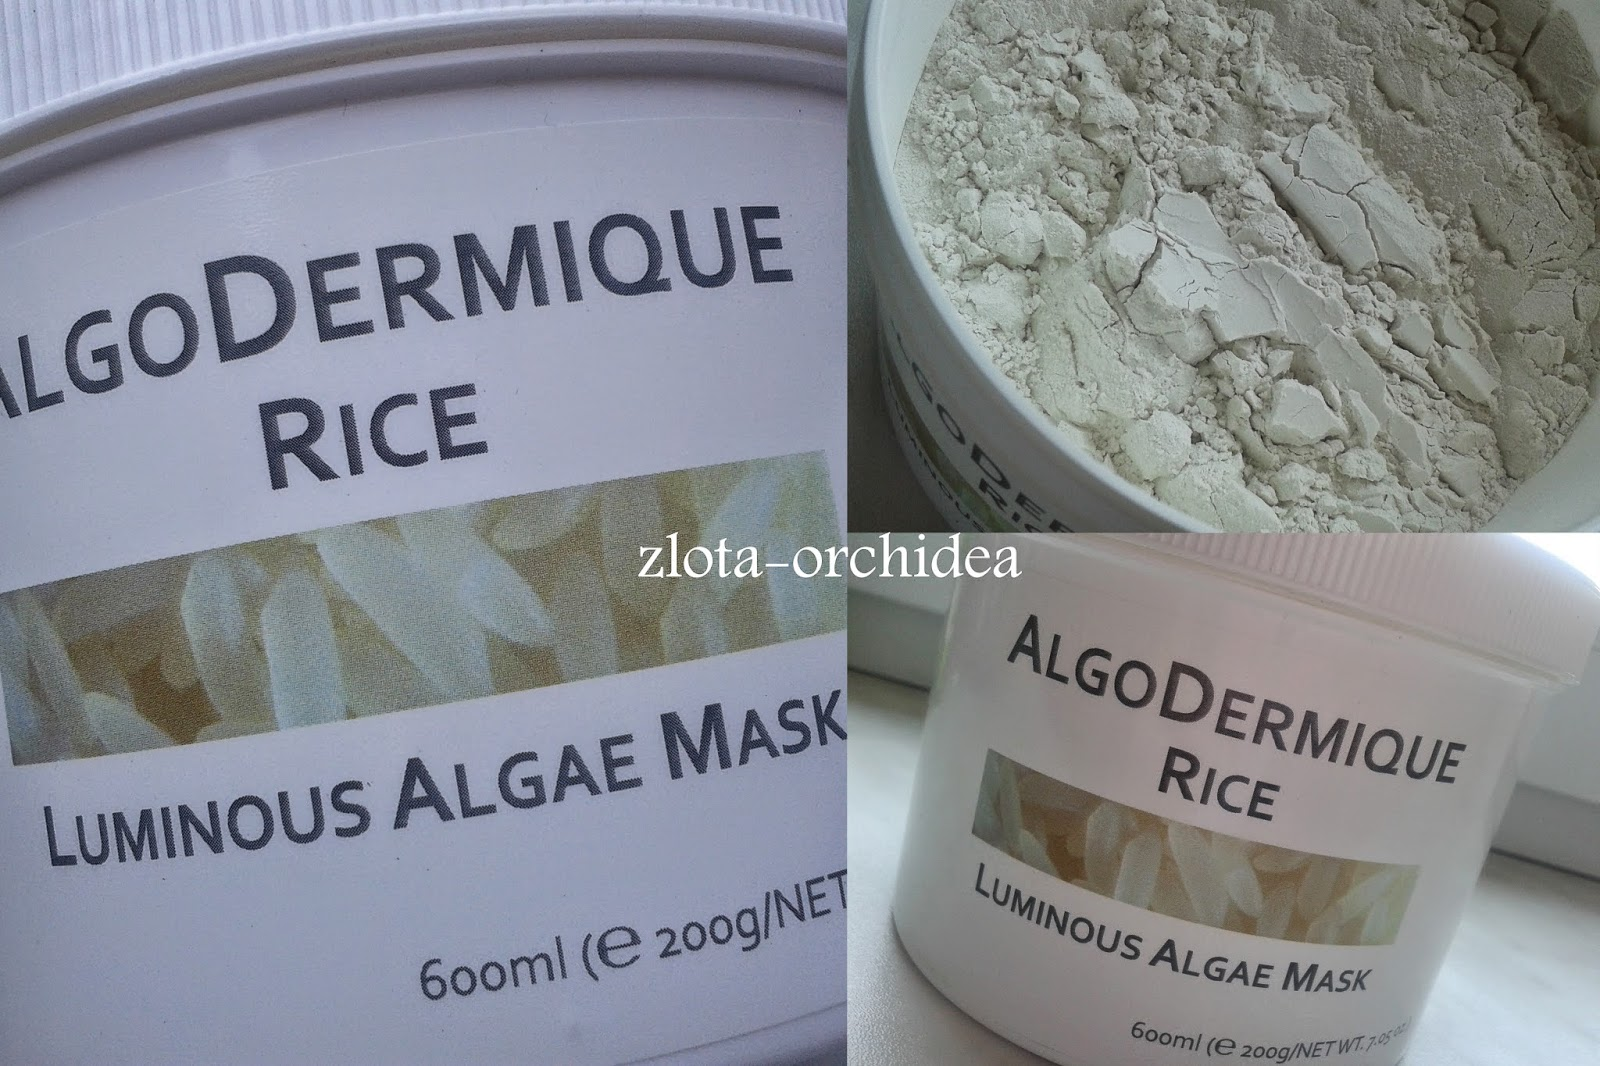 THEO MARVEE algo dermique rice